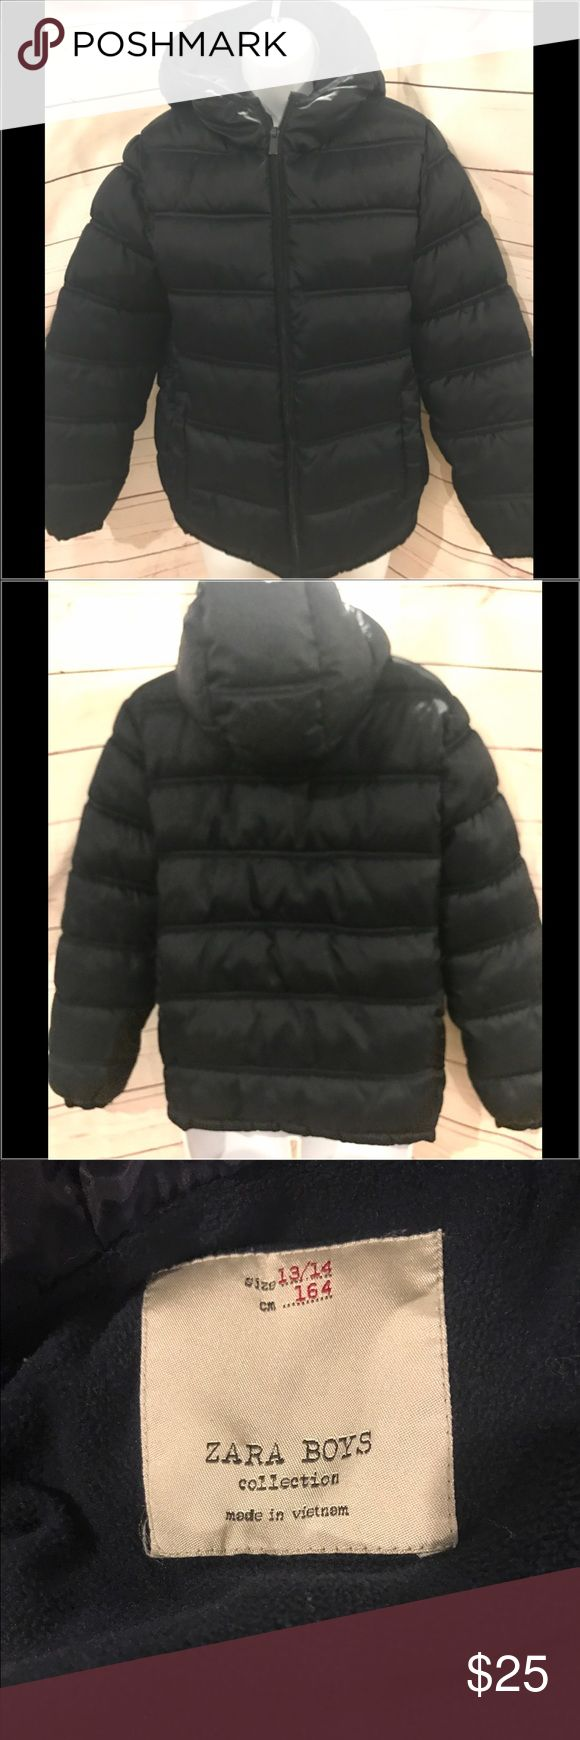 "Zara Boys Collection puffer coat Zara Boys Collection puffer coat. Navy blue, fully lined, and hooded.  Full zip up, 100% poly.  2 front pockets, excellent condition.   25"" long 19"" across chest.  Size is boys 13/14.  This could easily fit a women's small.    Item #328 Zara Jackets & Coats Puffers"